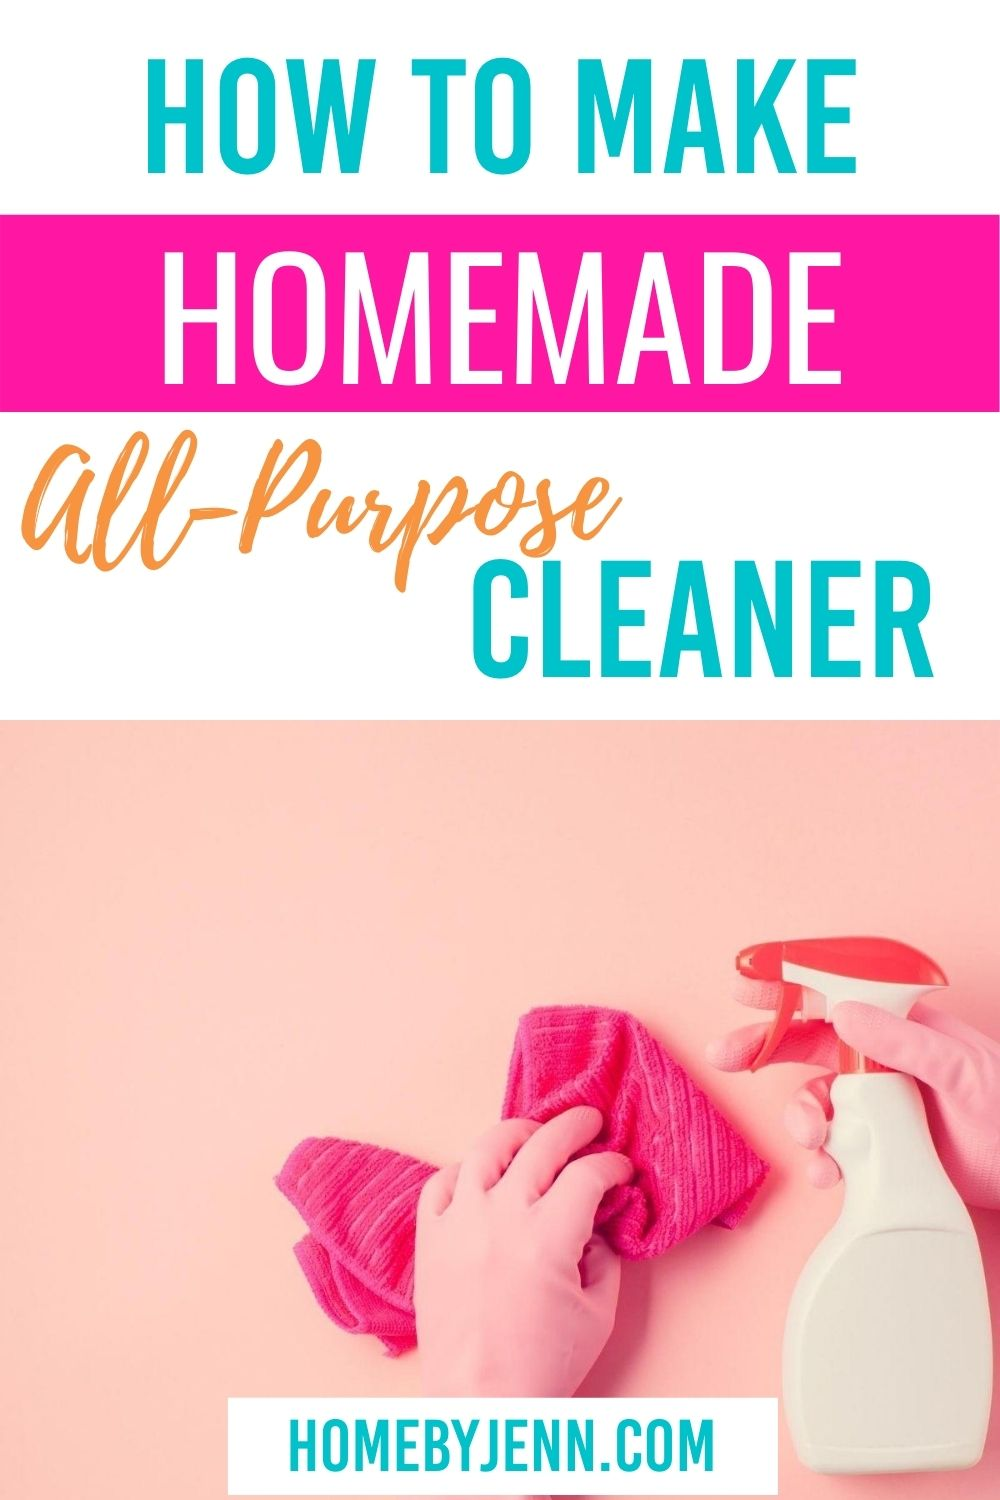 If you're looking for a simple and easy homemade all-purpose cleaner, you've arrived at the right place. In no time at all, you'll be using it to clean! #clean #naturalcleaner #allpurposecleaner #homemadecleaner #cleanhome via @homebyjenn